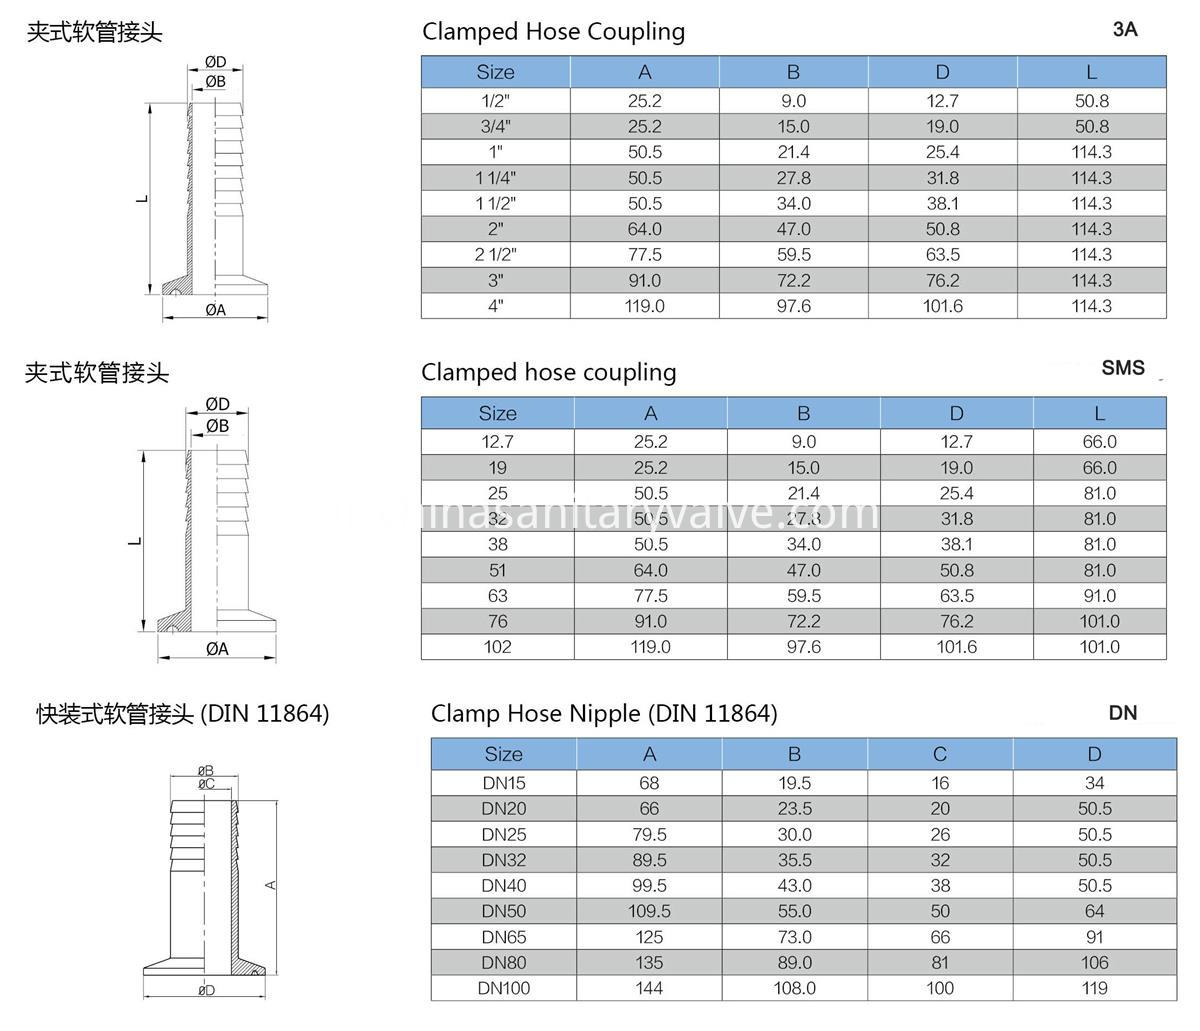 clamp hose coupling